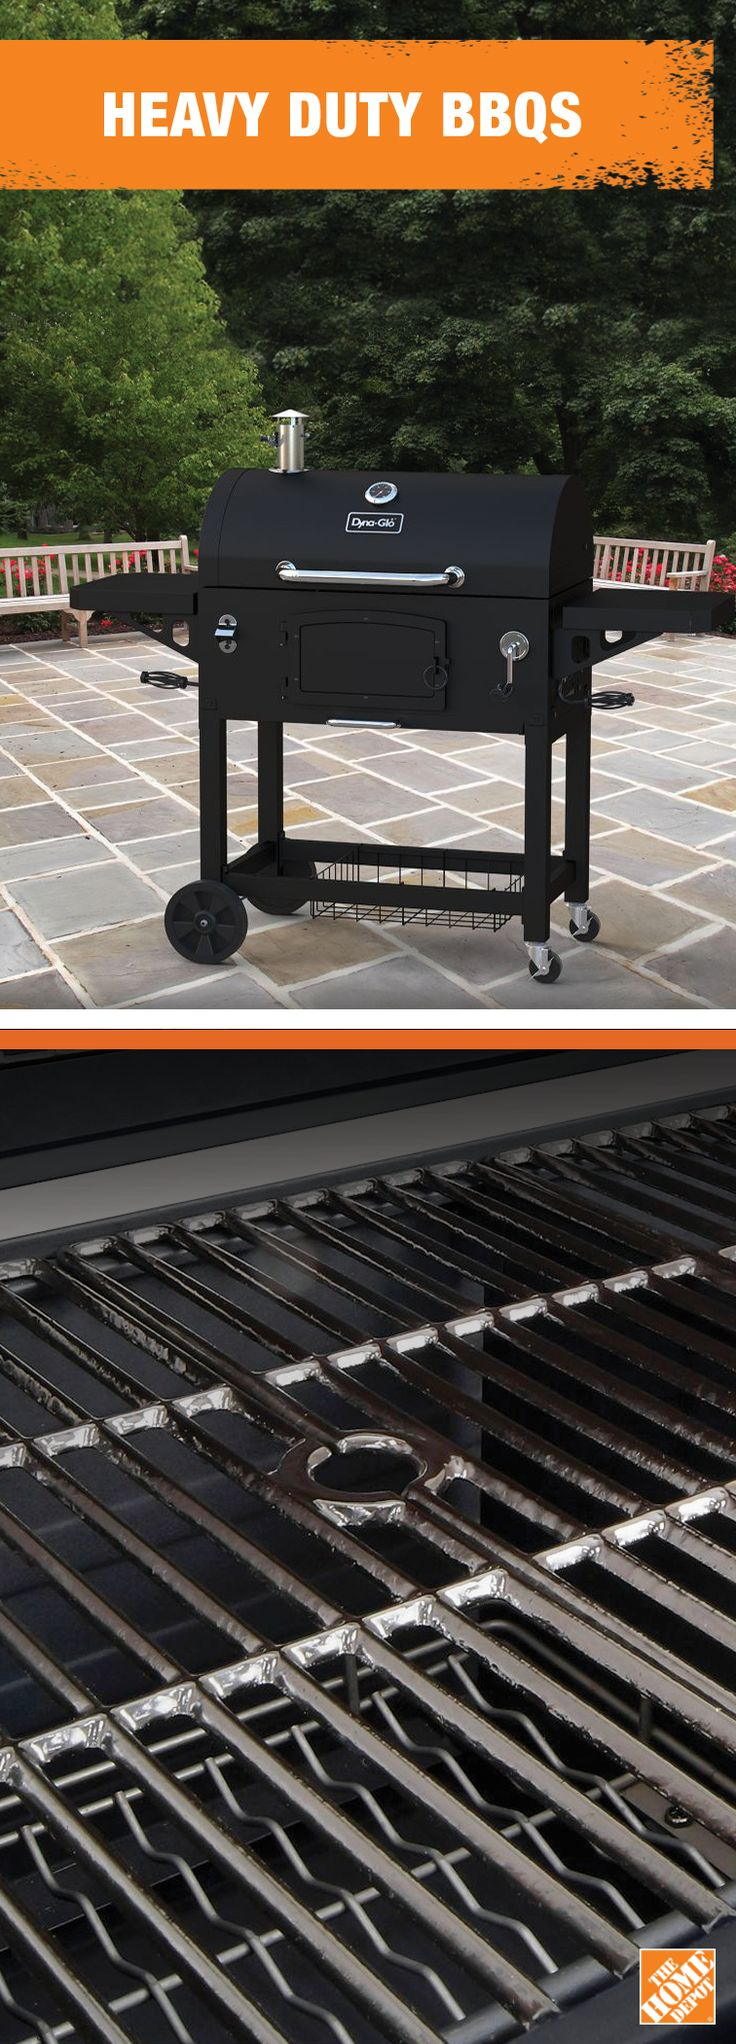 A #FathersDay gift for Dad is a gift for the whole family with this heavy-duty charcoal grill from Dyna-glo. Learn more at homedepot.ca: http://hdepot.ca/2rRqolO